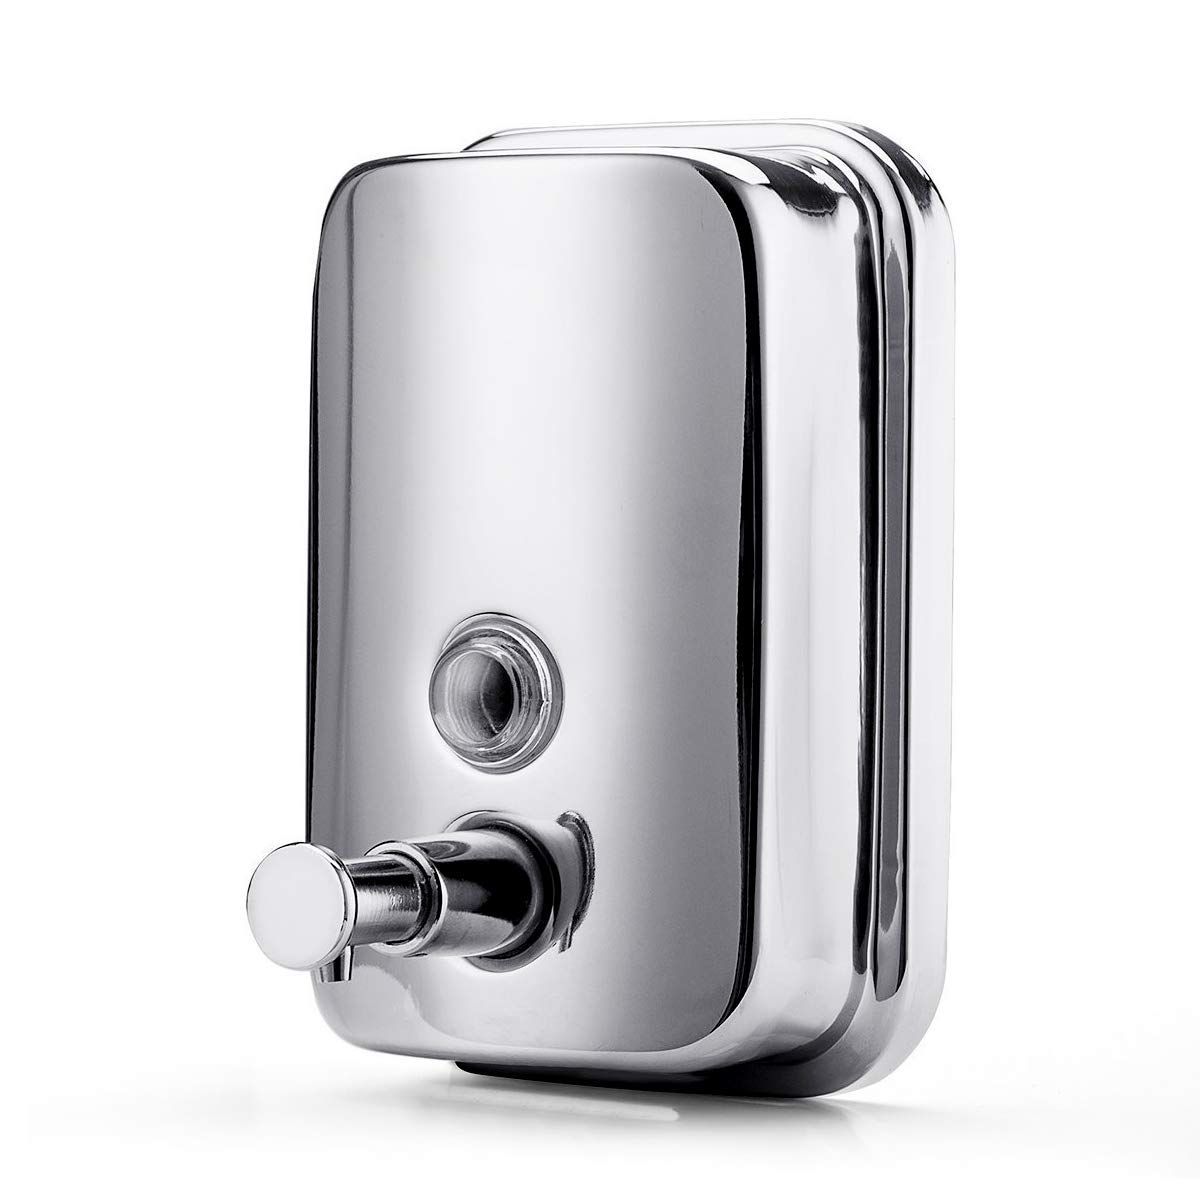 BravoTeam Soap Dispenser Stainless Steel Wall Mount Soap Dispenser Manual Liquid Soap Dispenser 18oz/500ml Soap Shampoo Liquid Container for Bathroom or Kitchen with Three Years Warranty